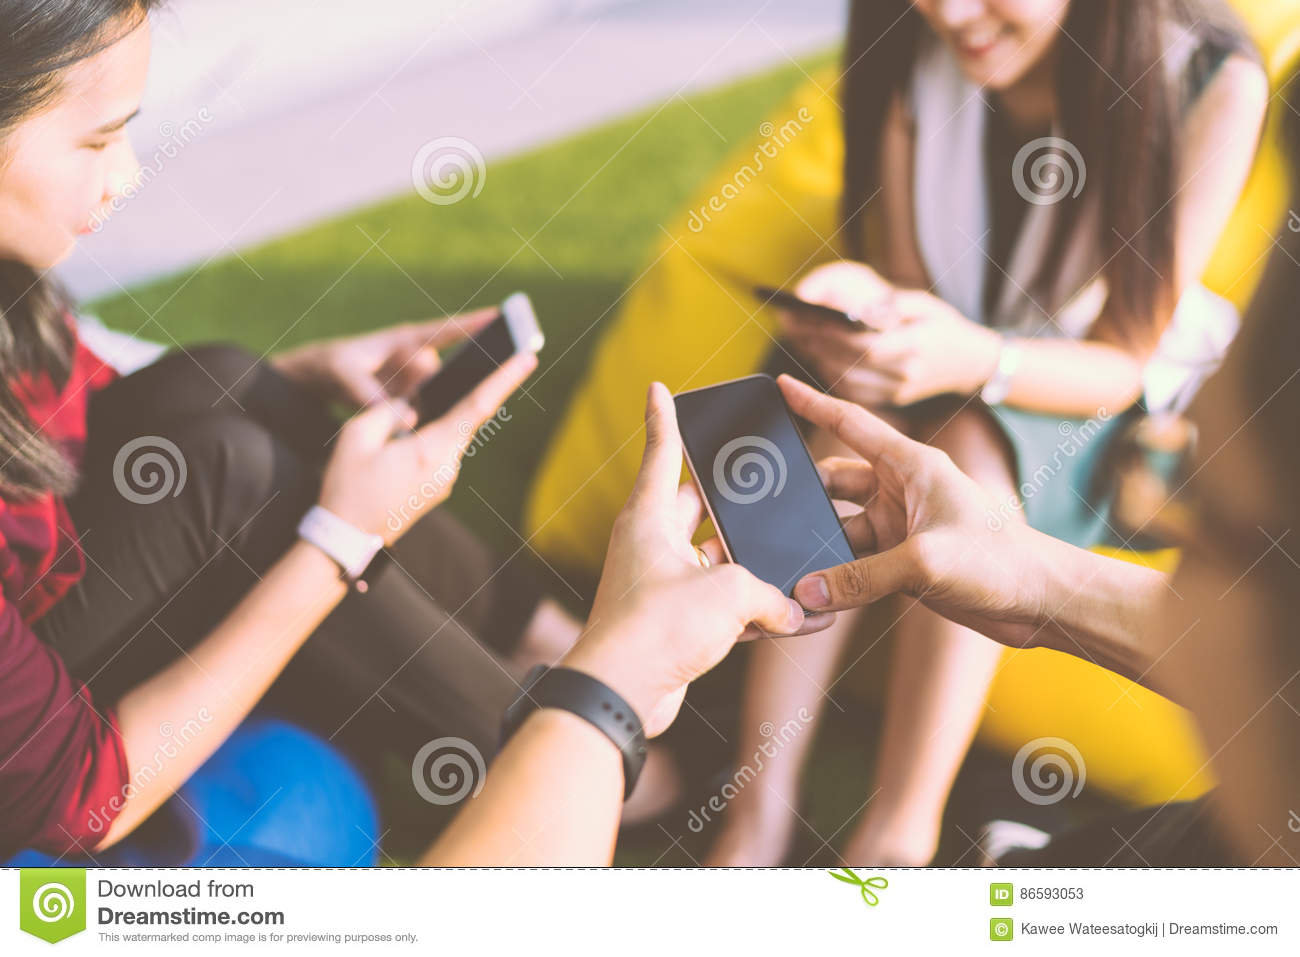 Group of three young people using smartphones together, modern lifestyle or communication technology gadget concept